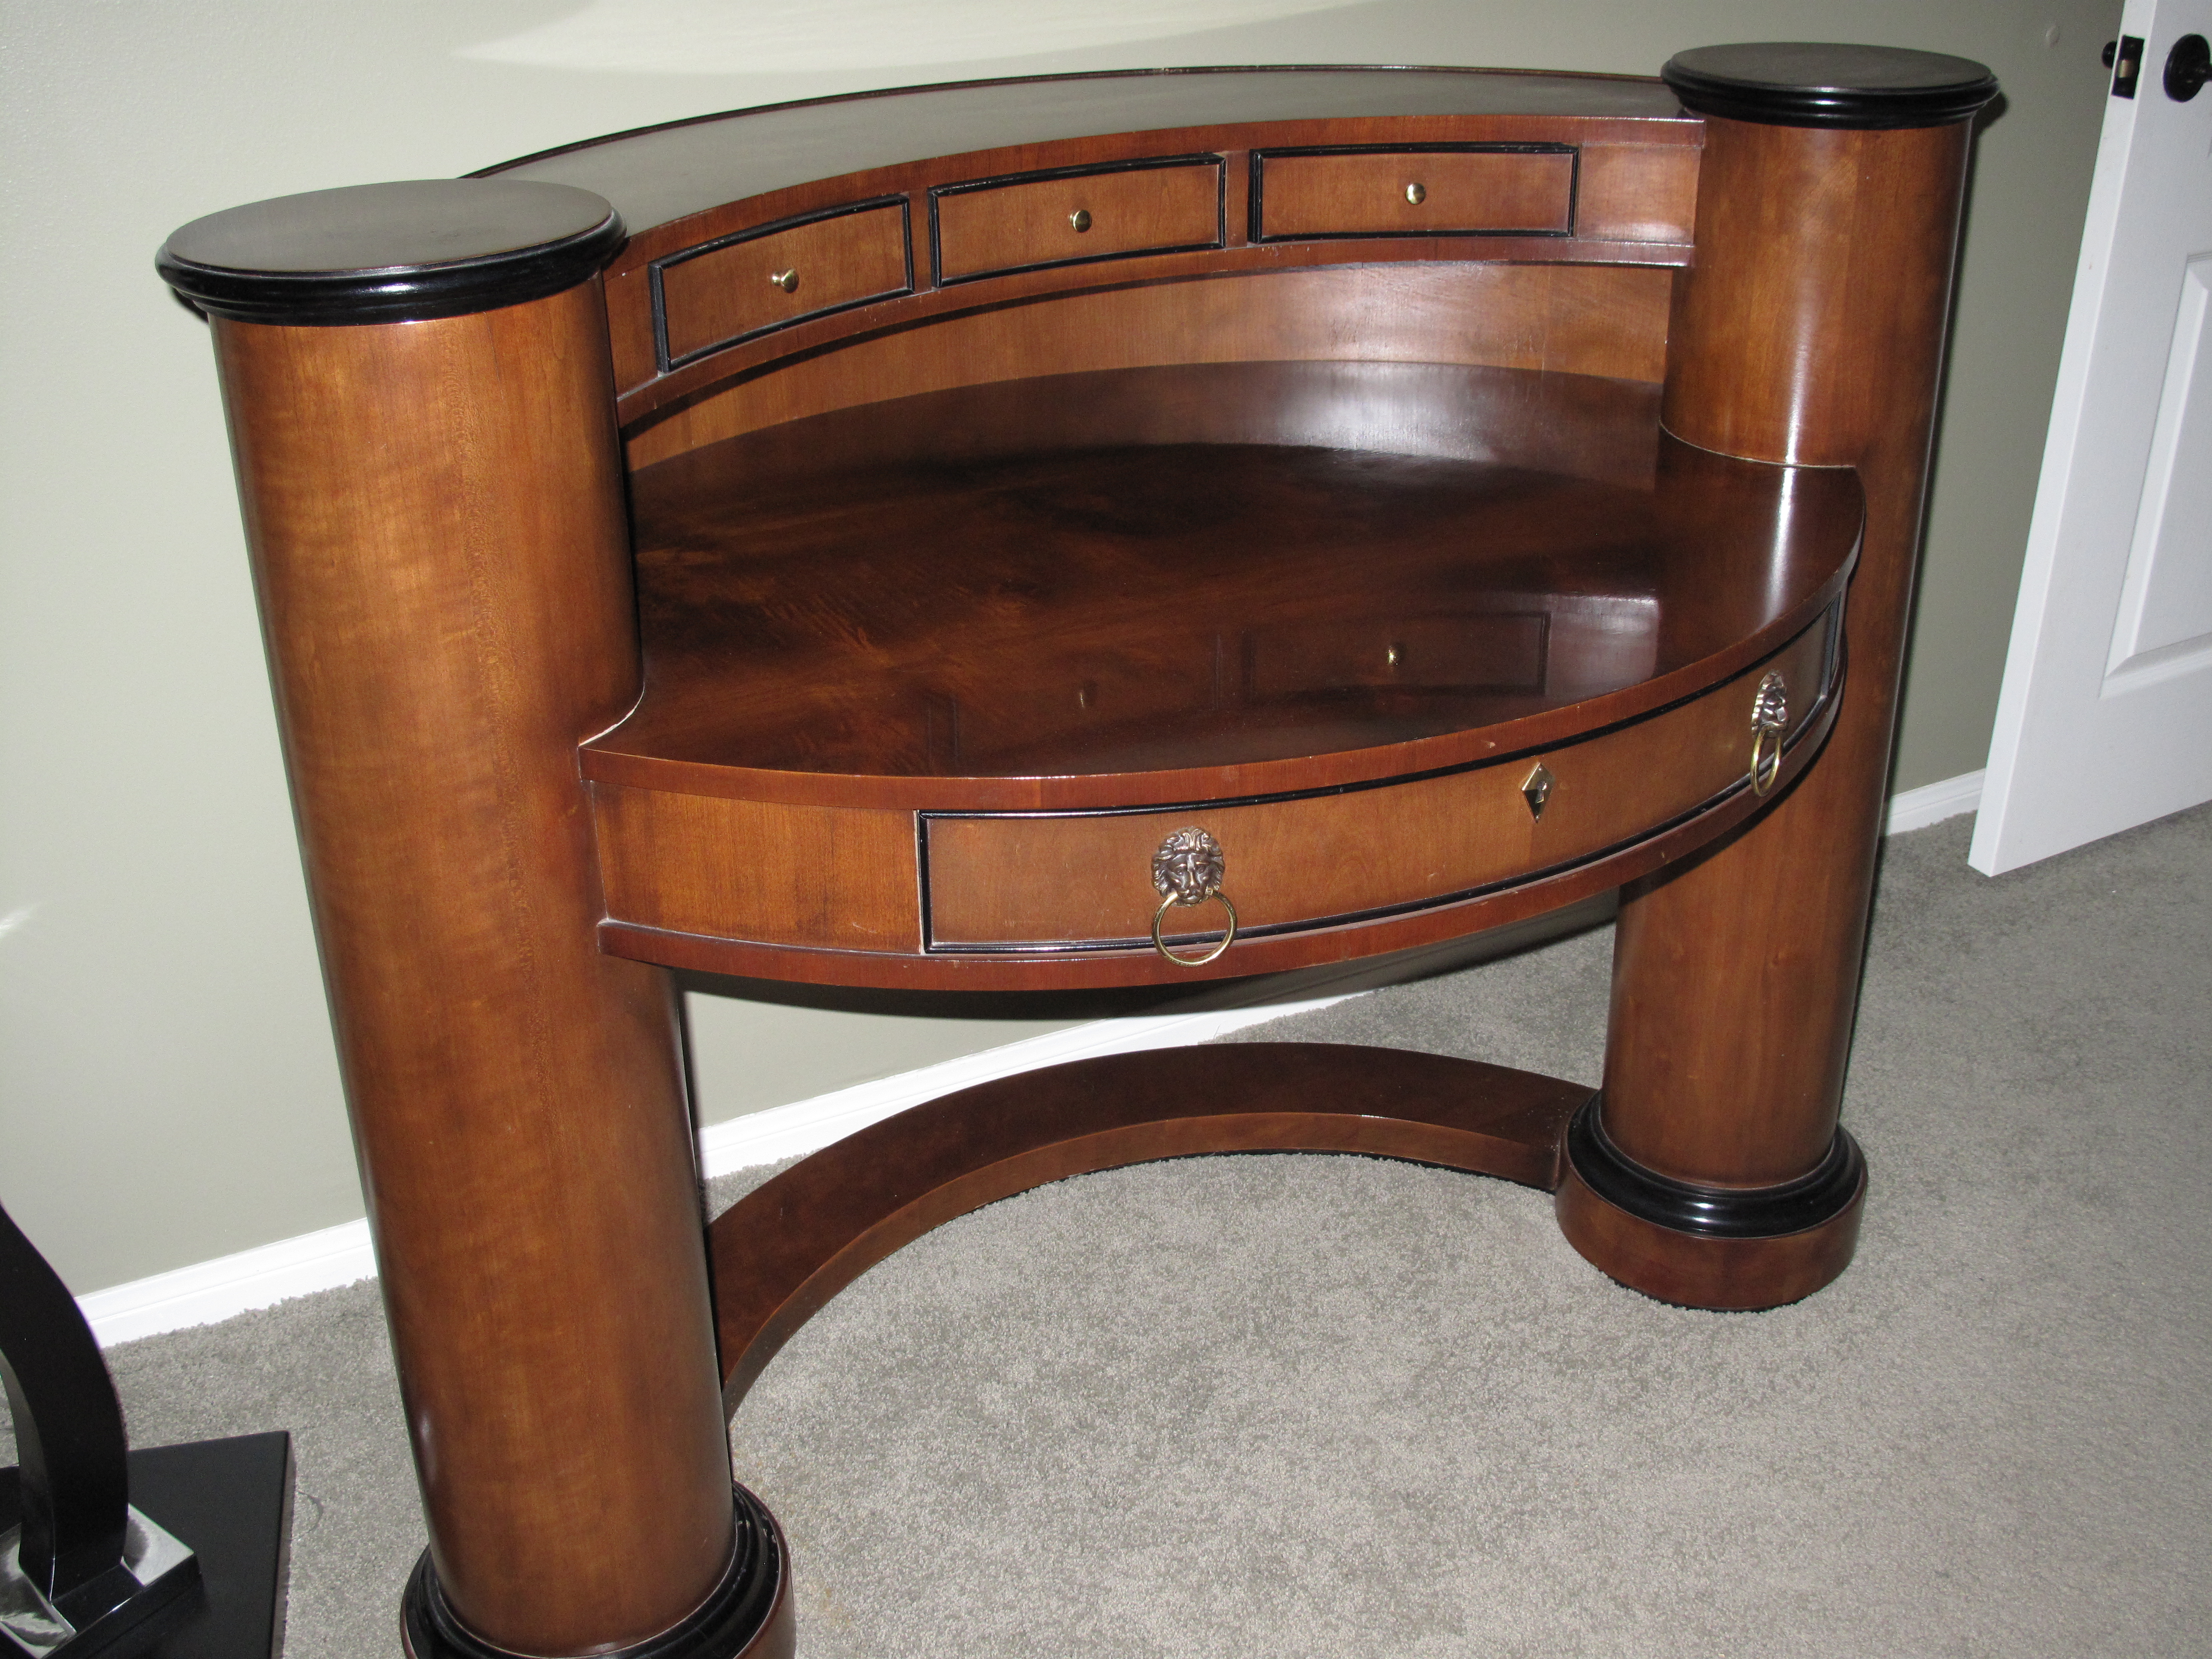 Century Furniture Company A Few Years Back Advised Me That They Stopped Producing This Desk Many Ago I Purchased New Around 1995